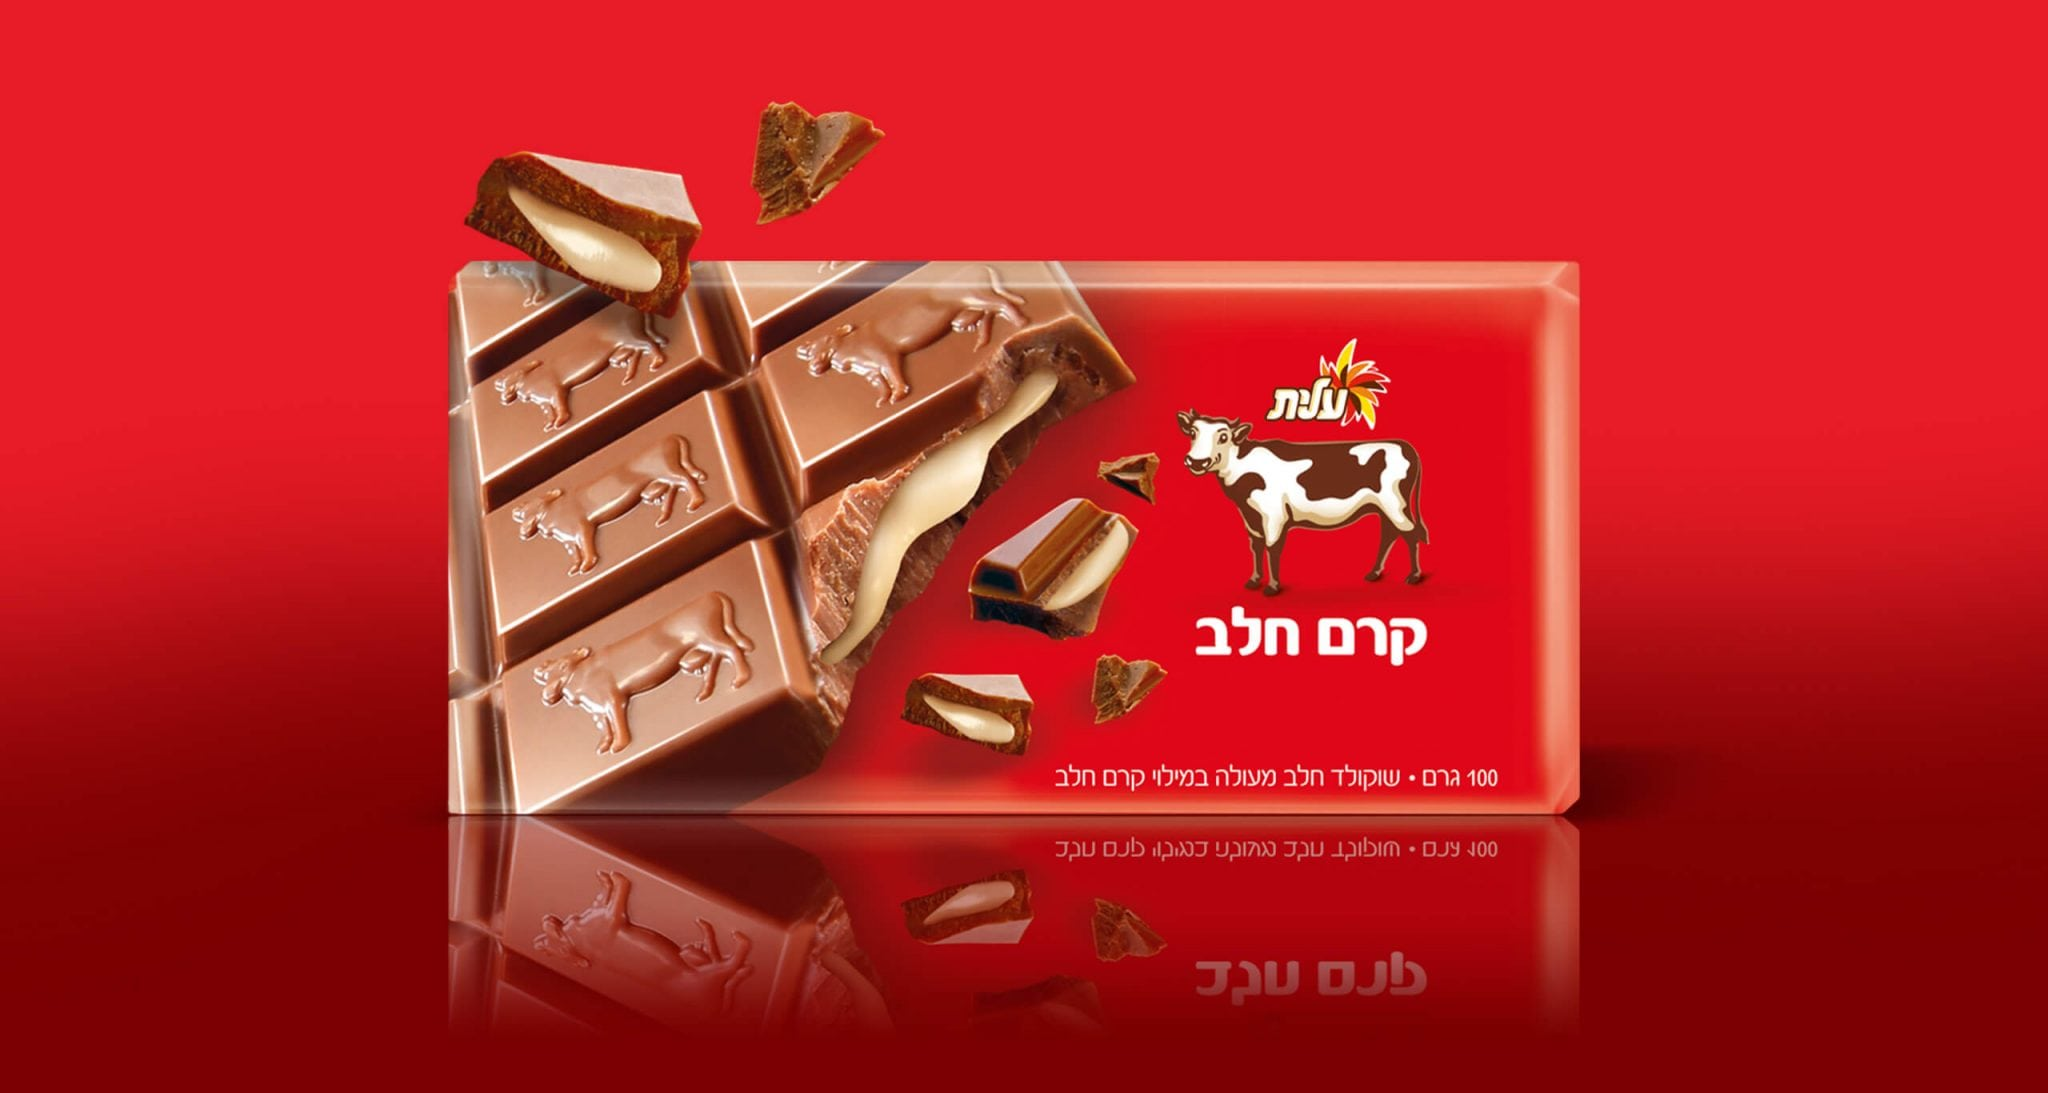 ELITE_CHOCOLATE_GalleryA05_2560x1366